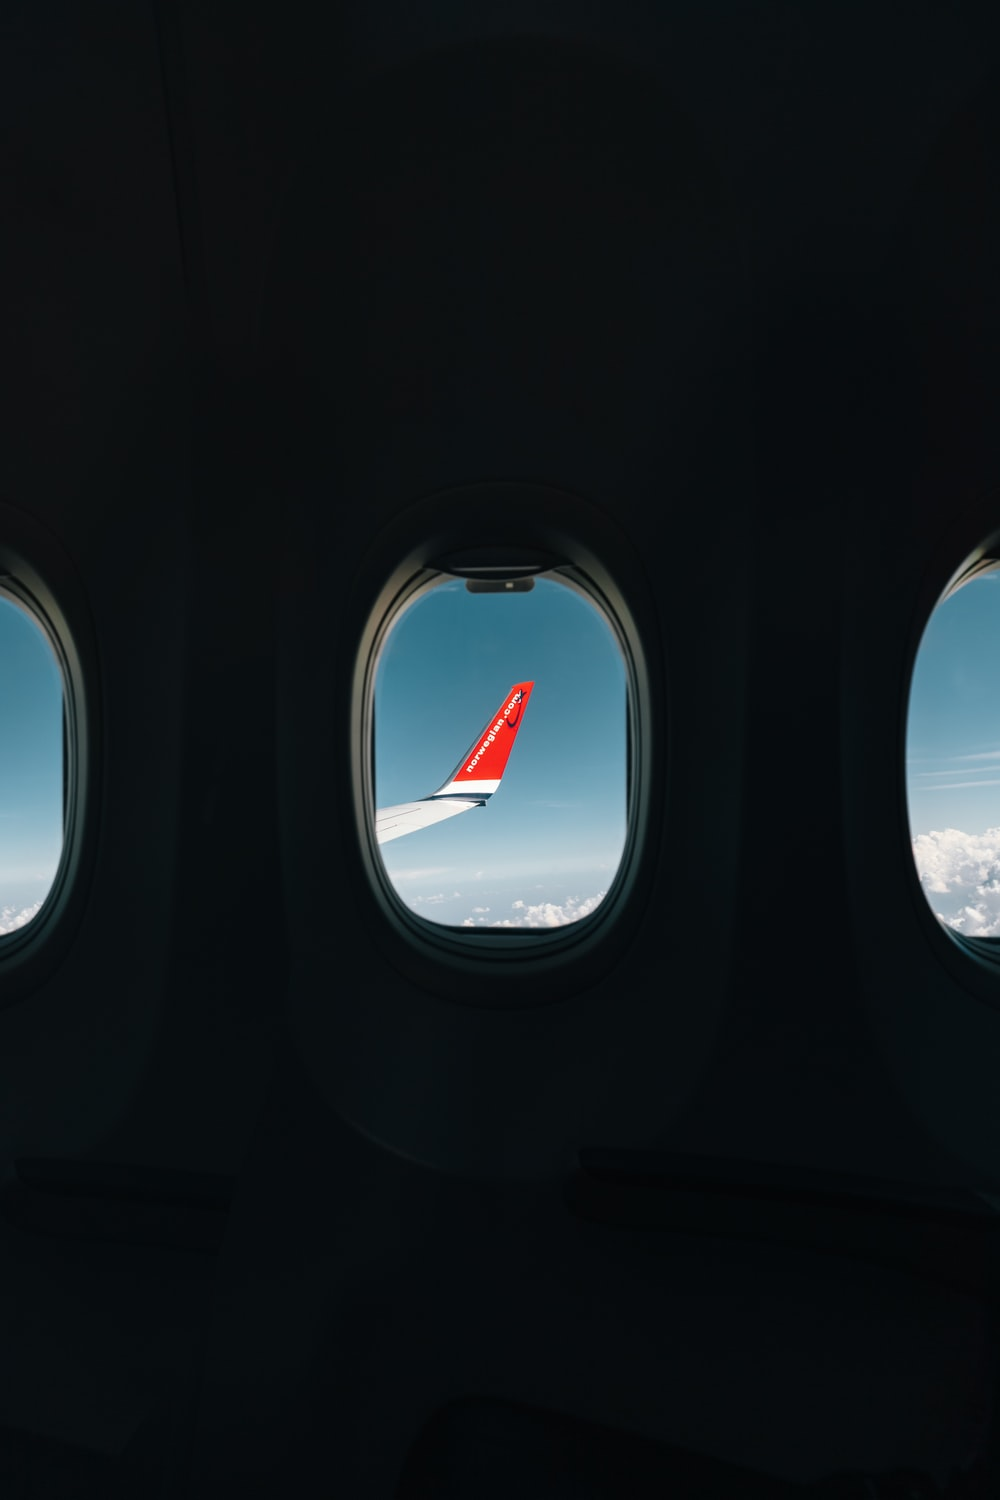 red airplane wing through window